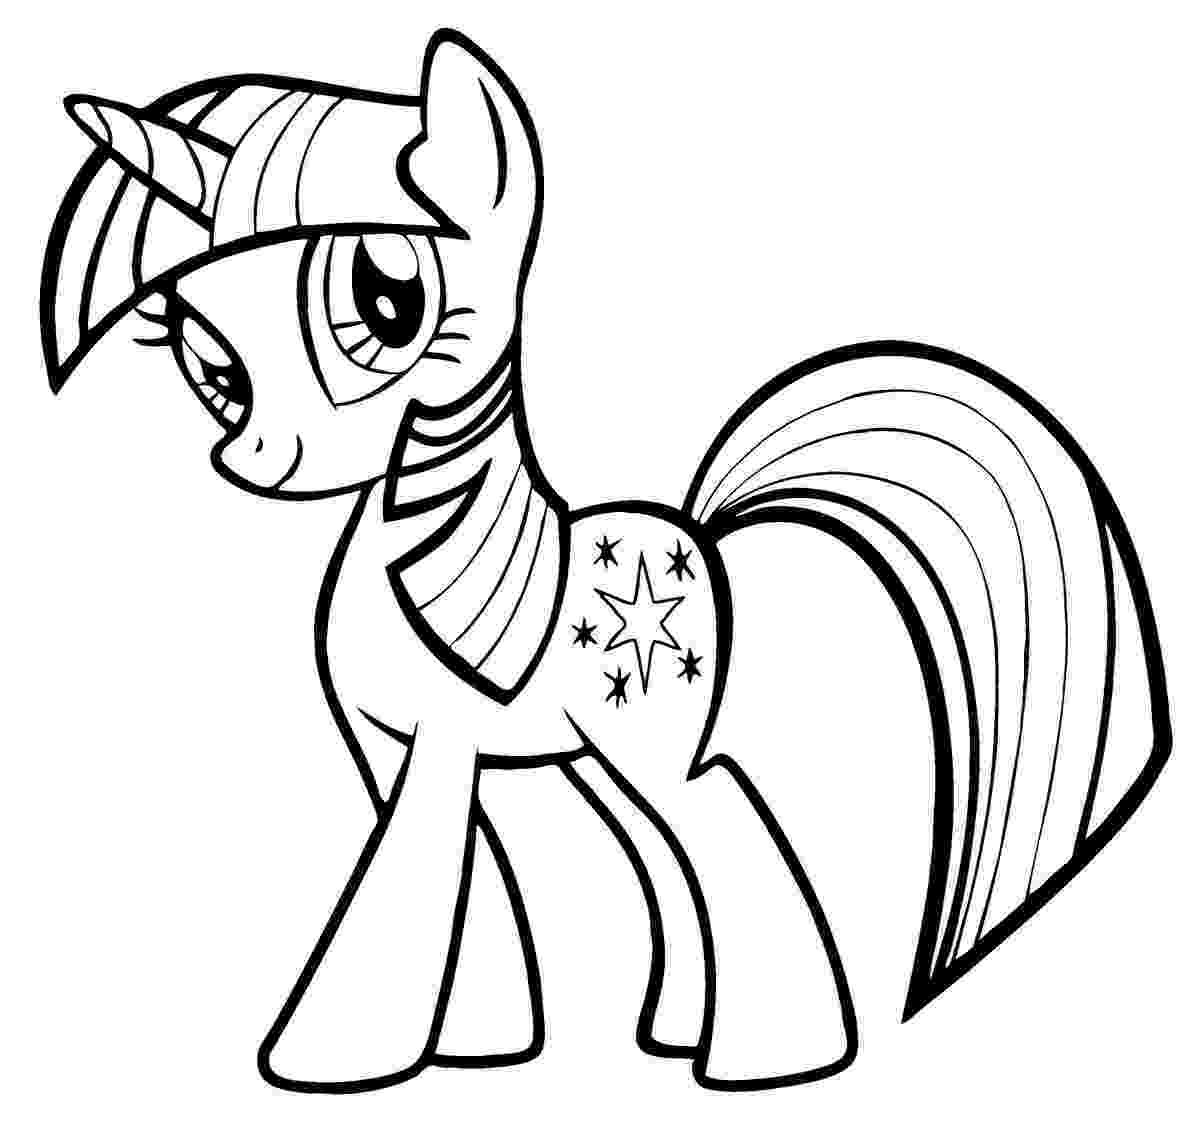 my little pony picture to color my little pony coloring pages getcoloringpagescom picture to little my color pony